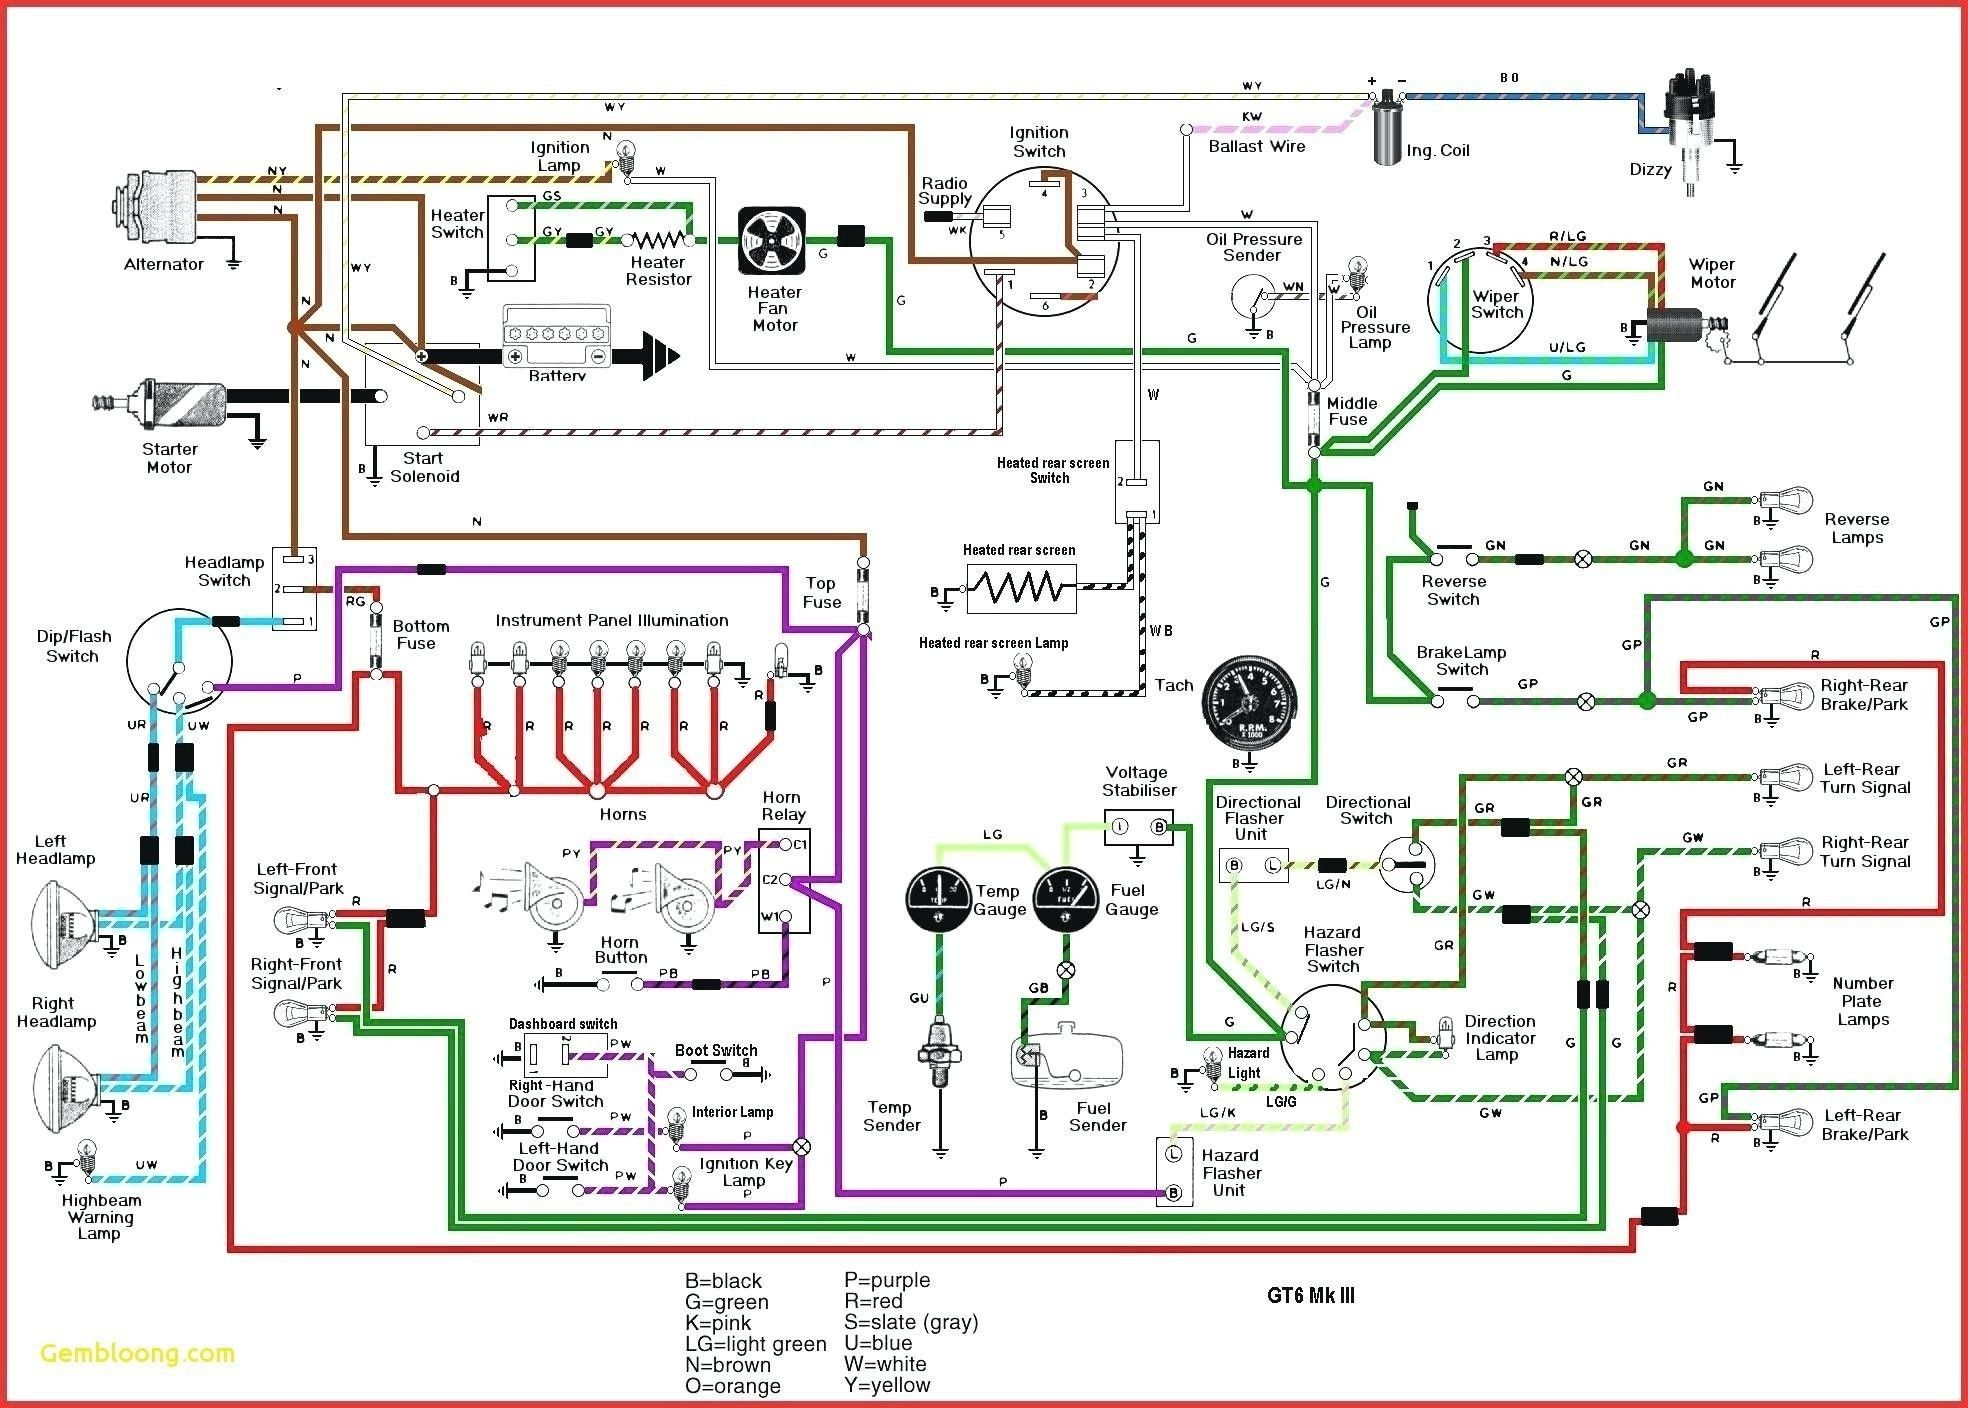 New House Wiring Diagram south Africa #diagram #diagramsample # diagramtemplate | Electrical circuit diagram, Electrical diagram, Electrical  wiringPinterest